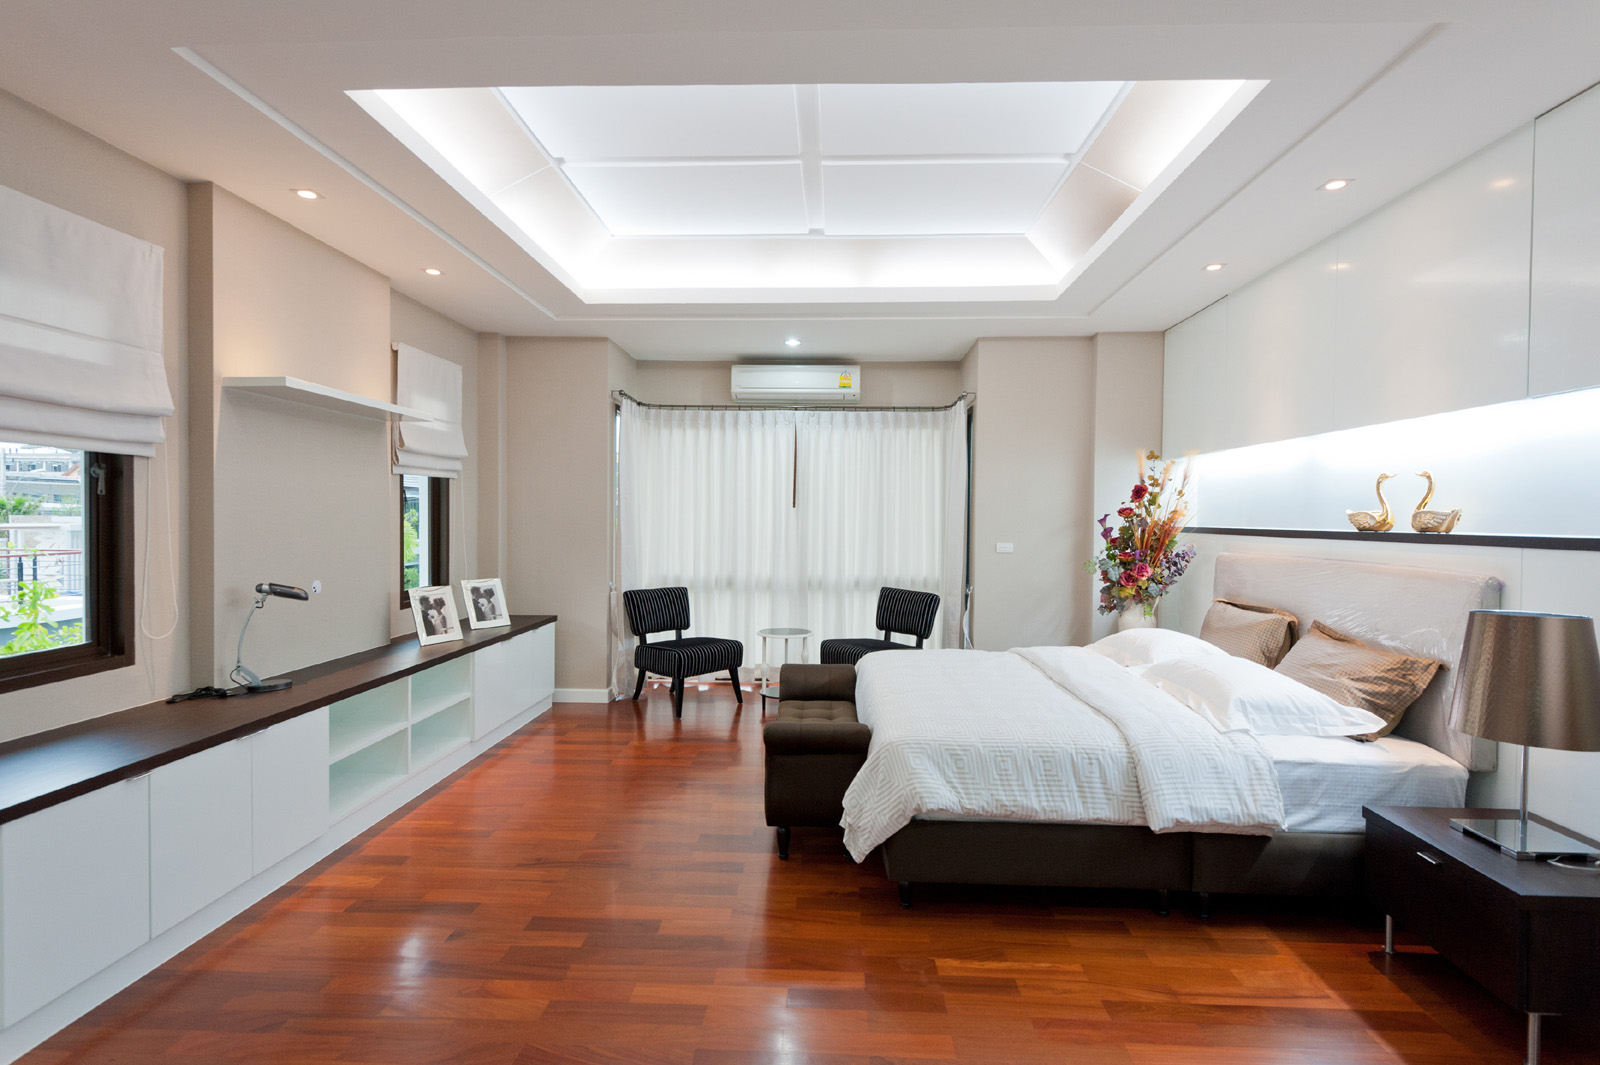 Spacious bedroom interior 51203